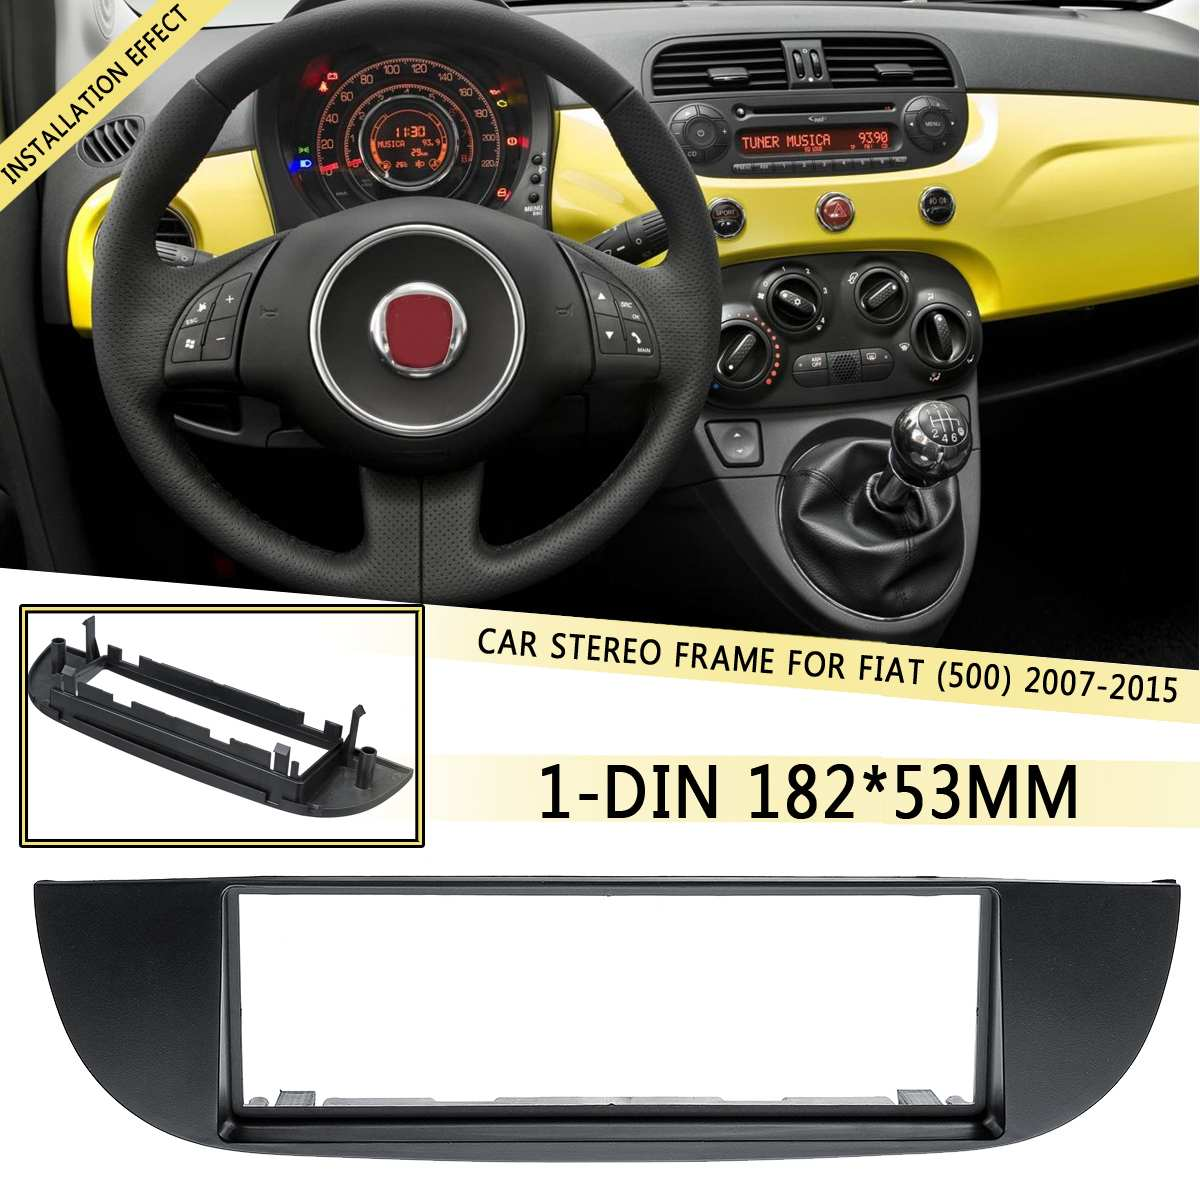 1 DIN Car DVD/CD Radio Stereo Frame Facia Panel Trim Adapter Dash kit For Fiat (500) 2007 2008 2009 2010 2011 2012-2015 182x53mm image